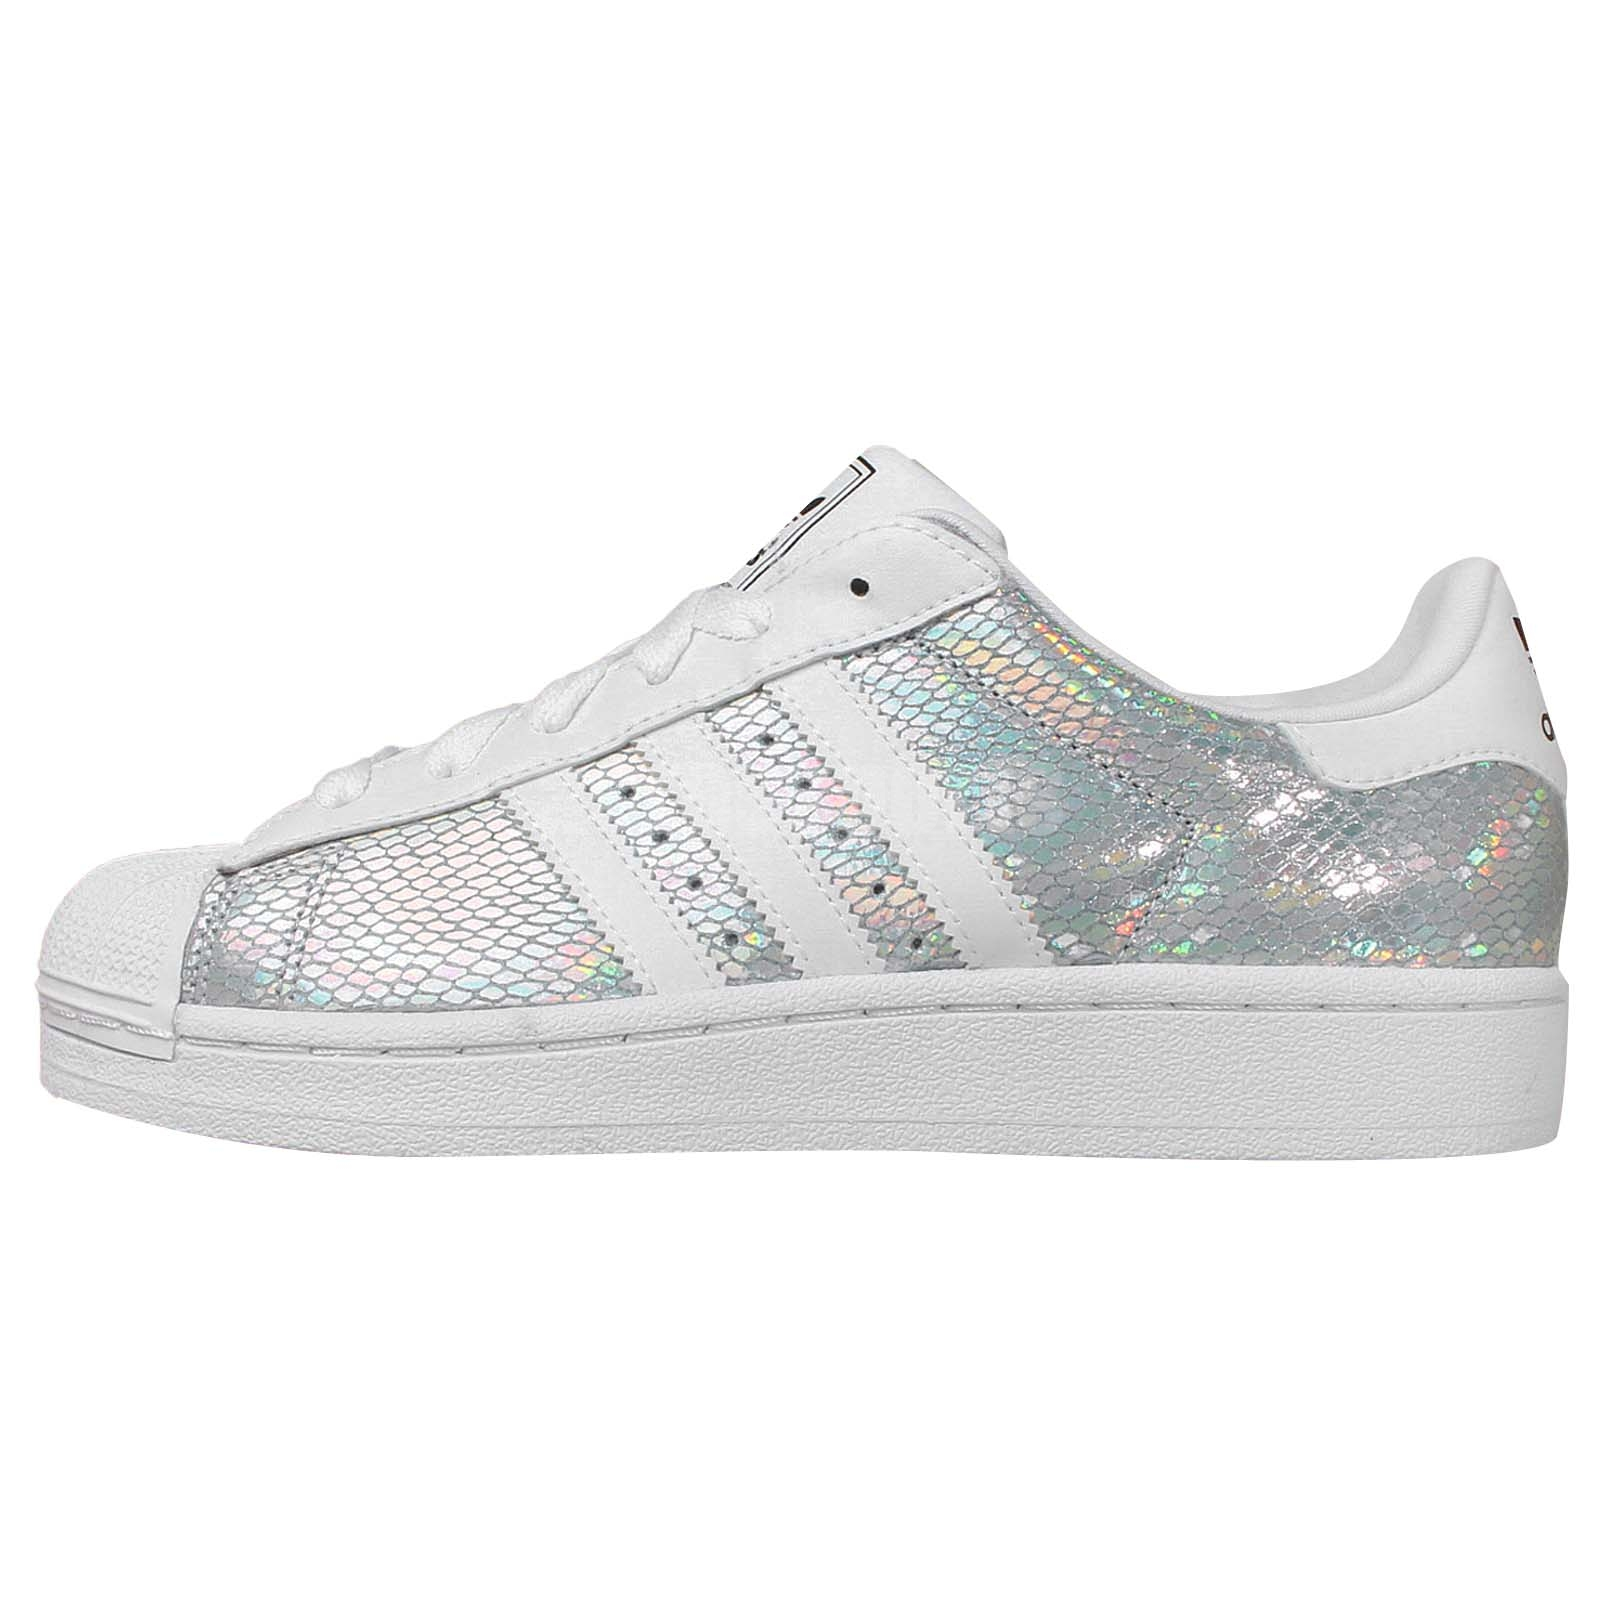 ... Originals Superstar 2 W Silver White Womens Casual Shoes Sneakers